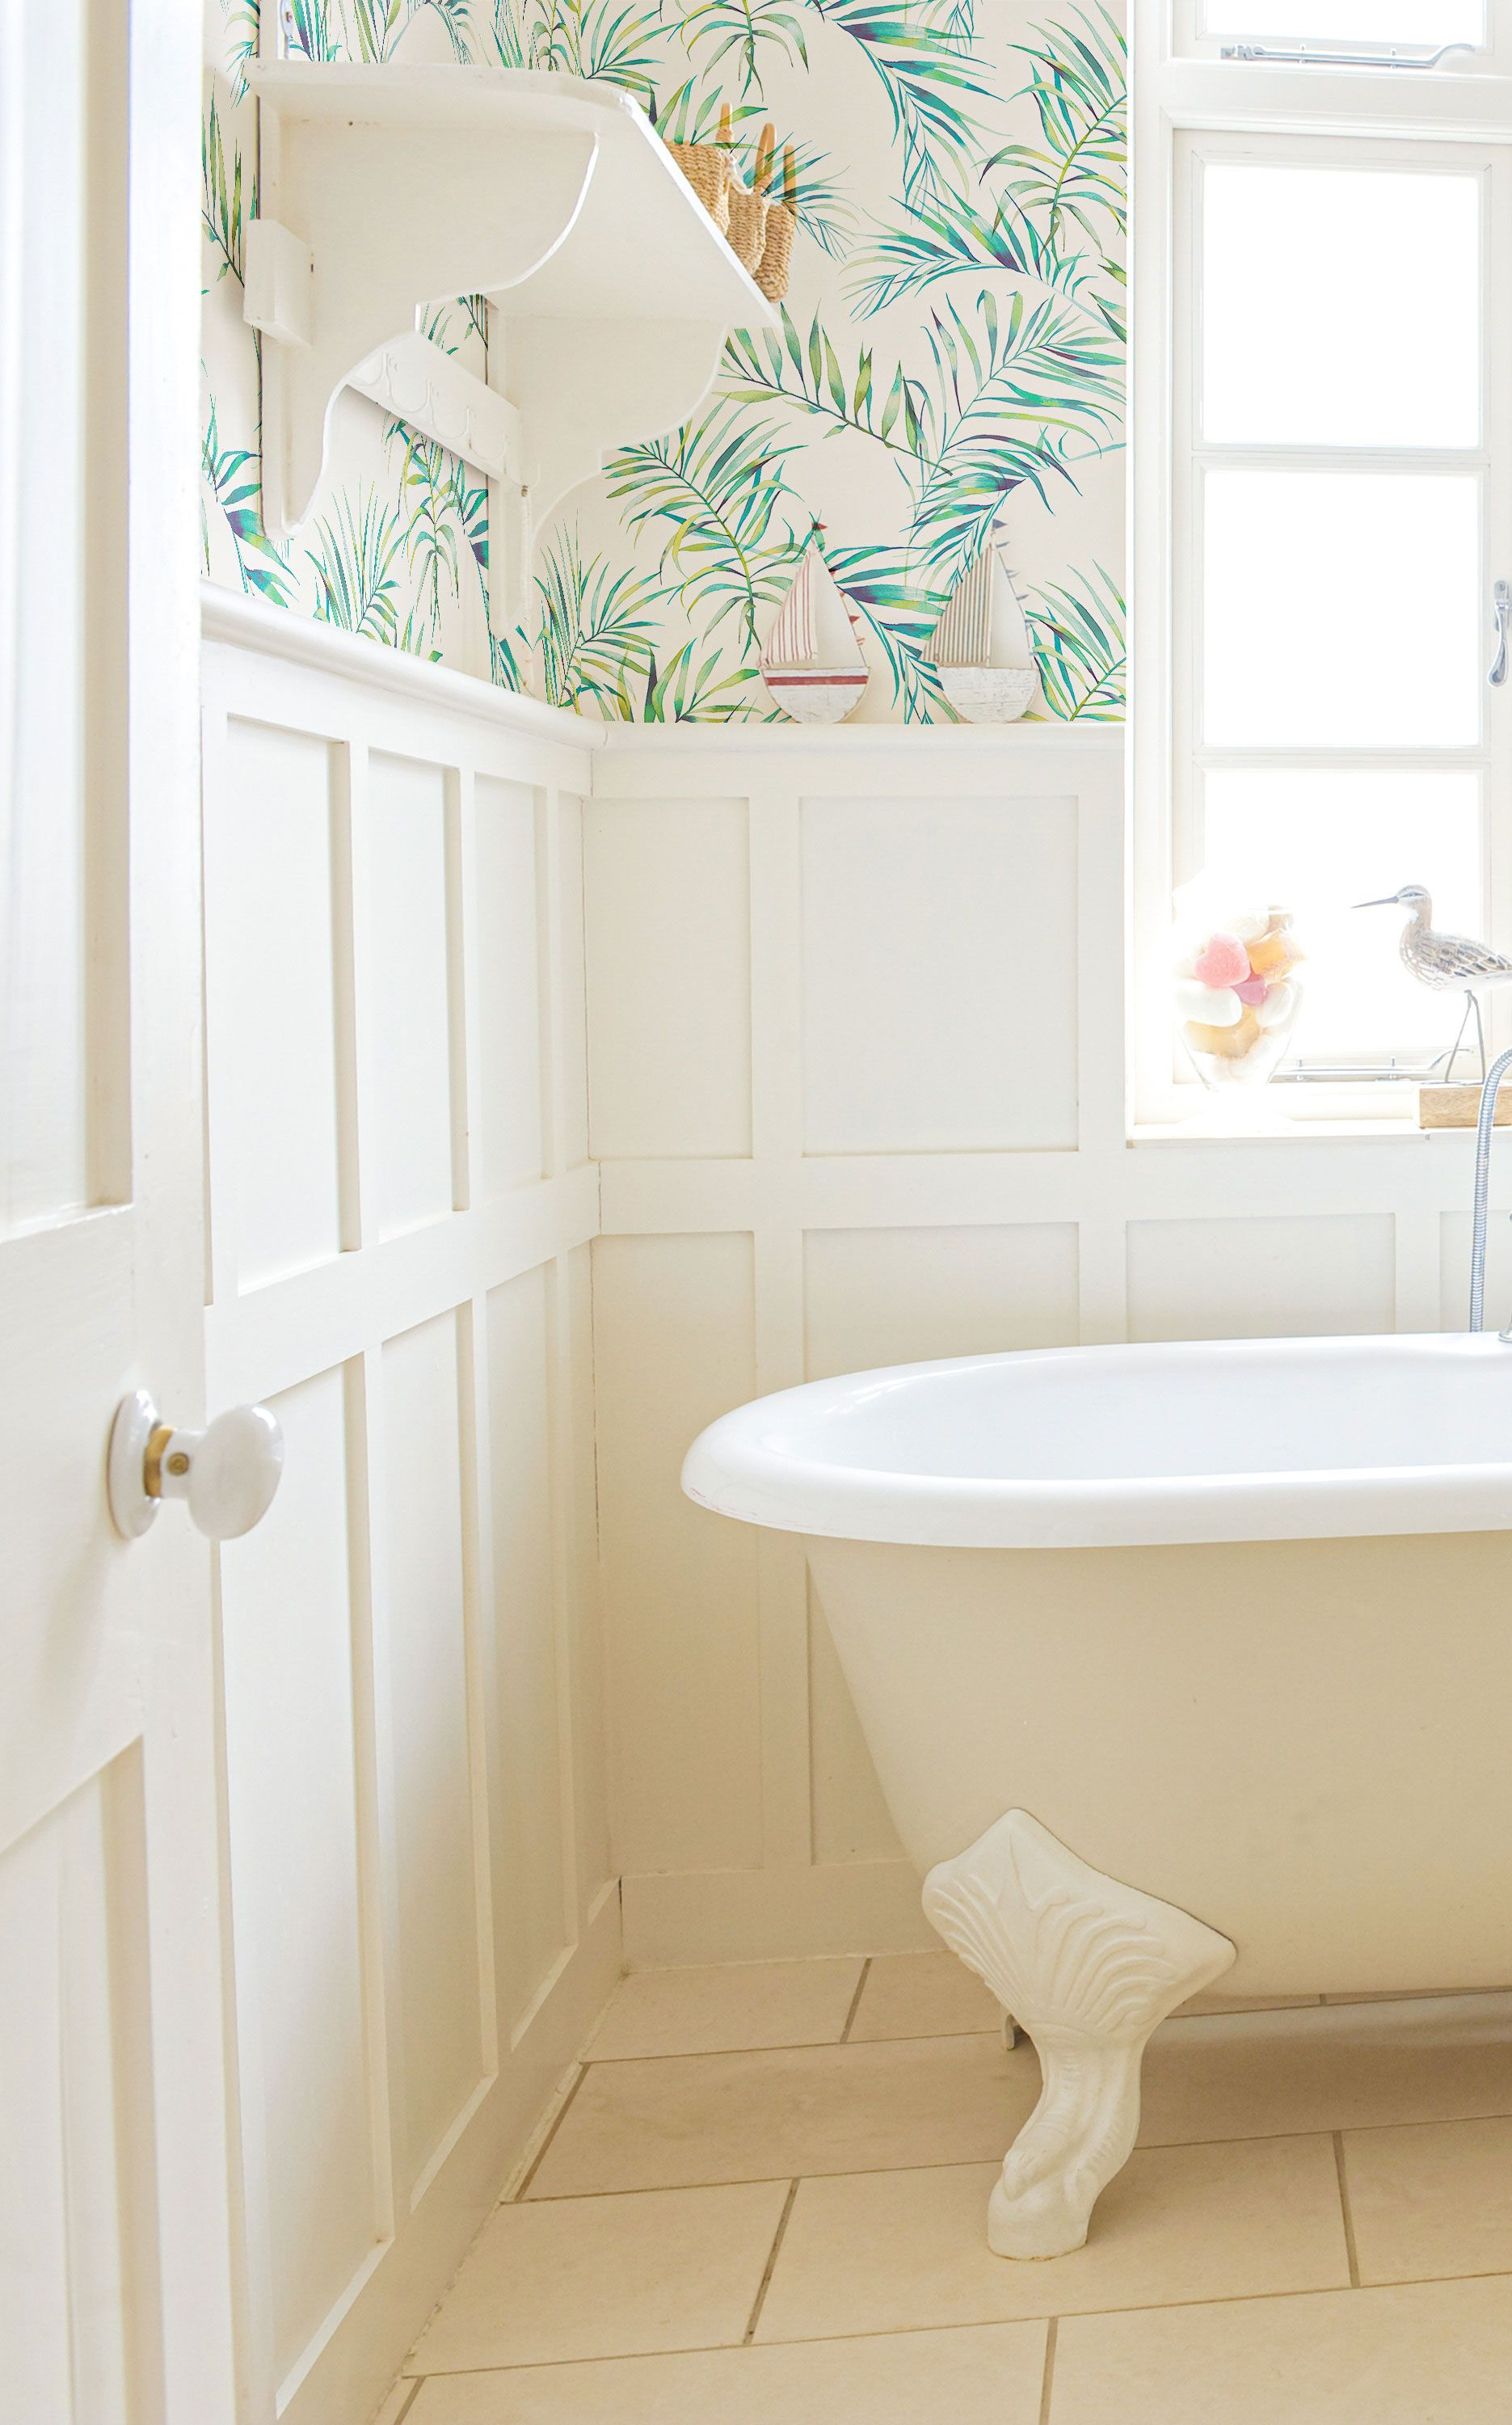 Green Botanical Floral Peel And Stick Removable Wallpaper 0670 Country Bathroom Decor Removable Wallpaper Decor Magazine